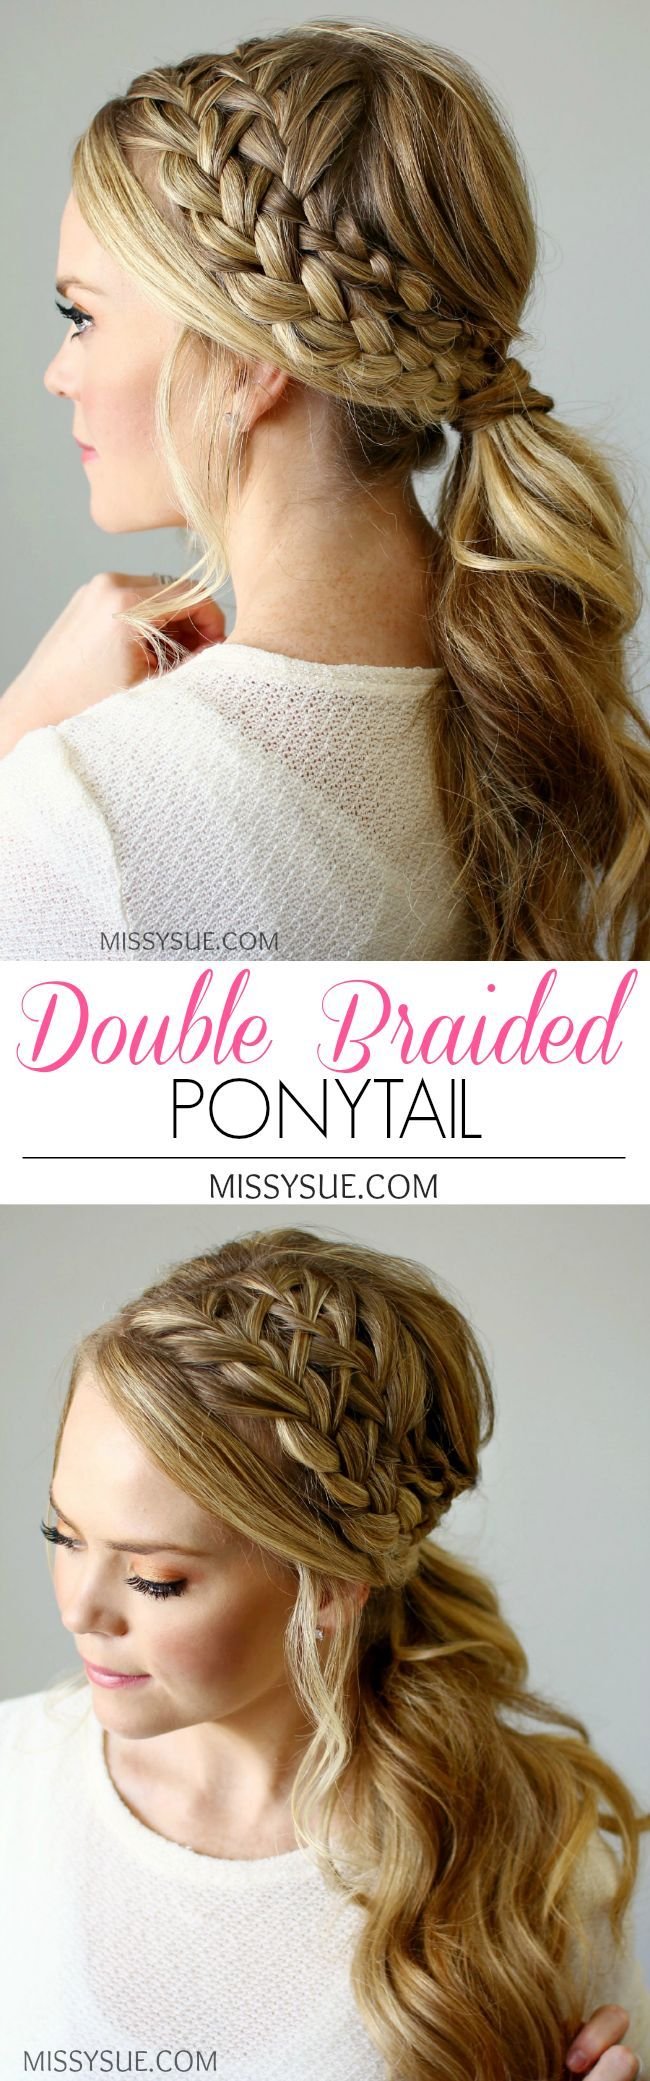 Pleasing 1000 Ideas About Braided Ponytail Hairstyles On Pinterest Short Hairstyles For Black Women Fulllsitofus